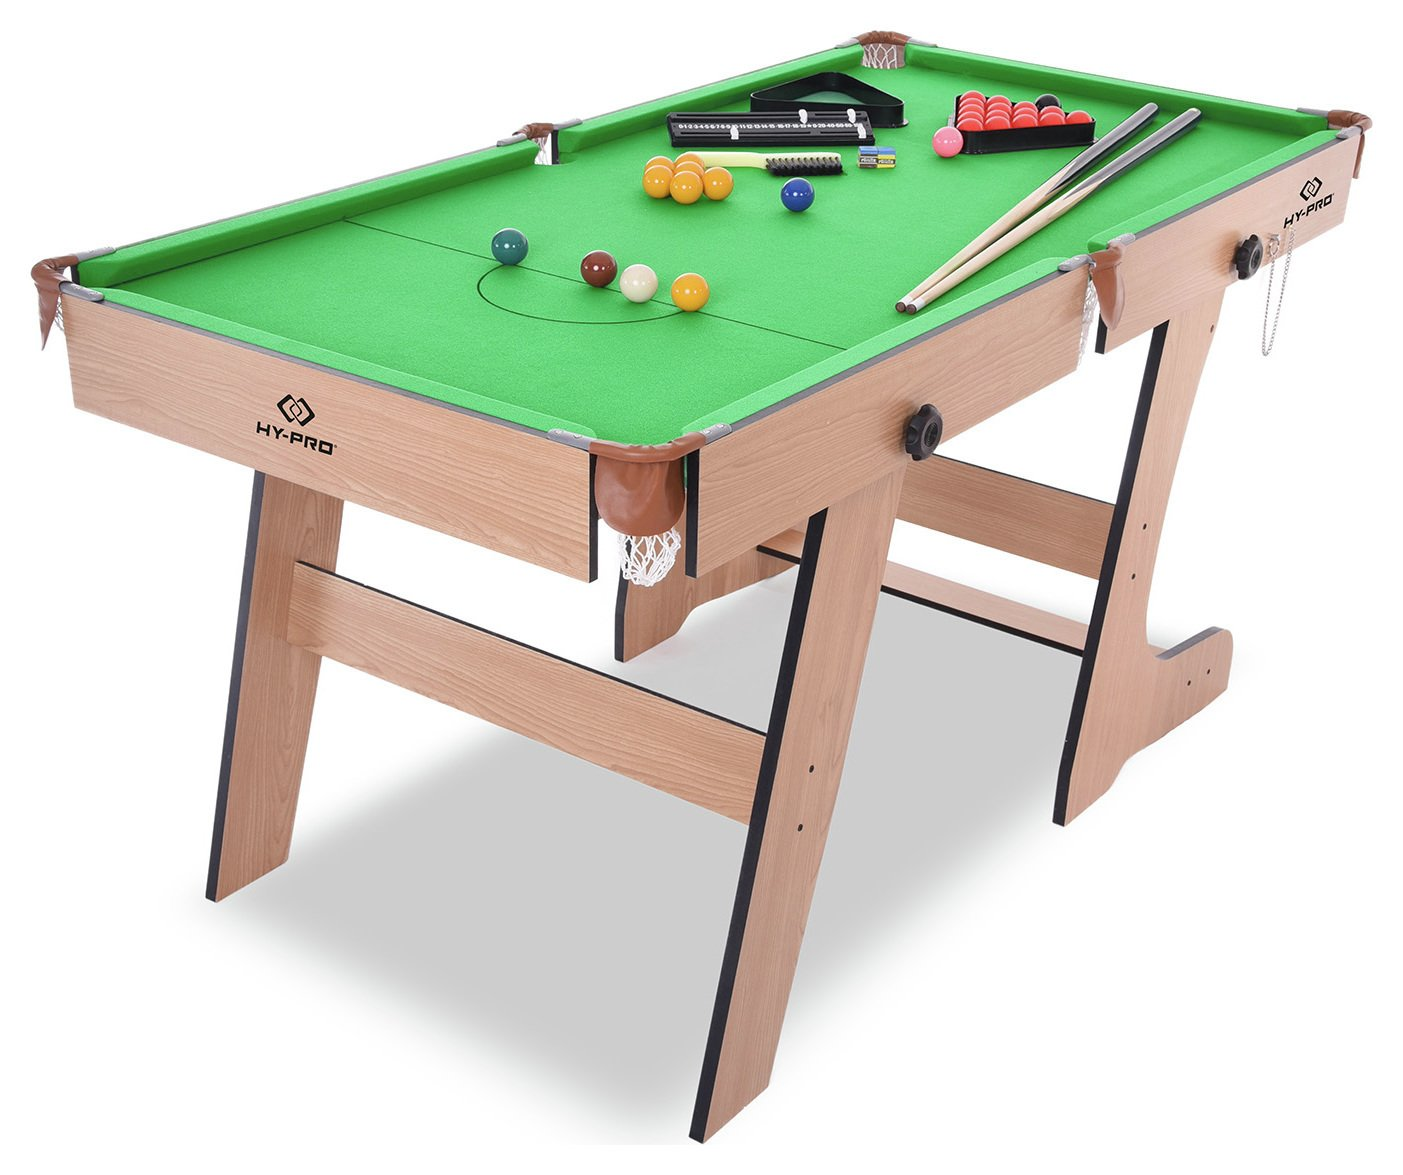 Hypro - 6ft Folding Snooker and Pool Table